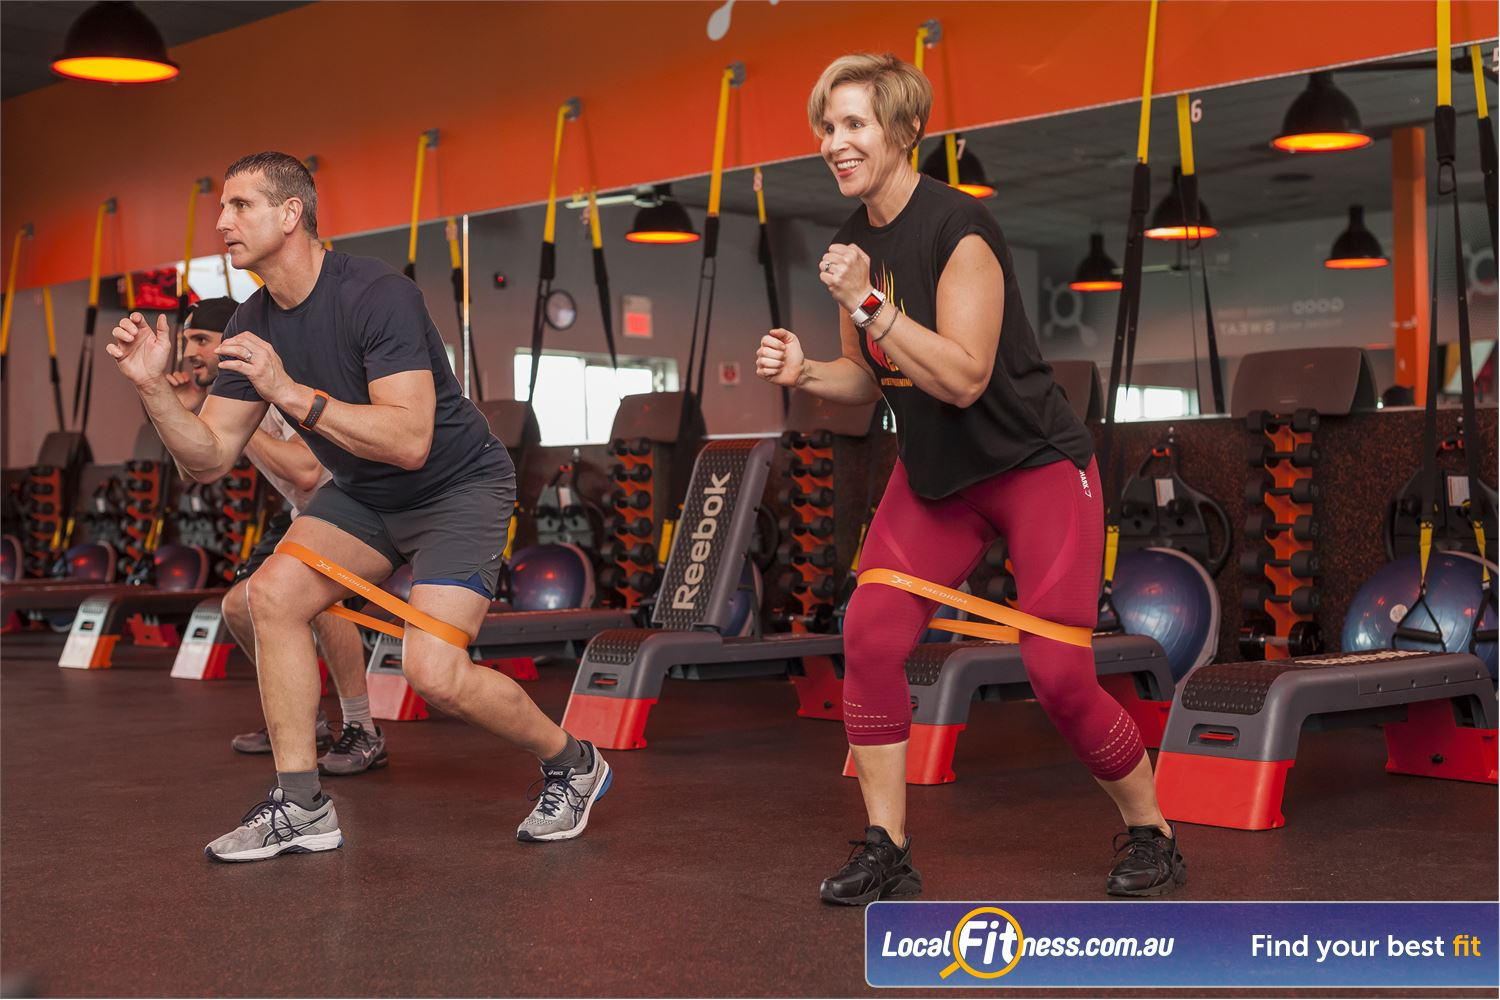 Orangetheory Fitness Hawthorn Our state of the art Hawthorn gym is fully equipped for strength